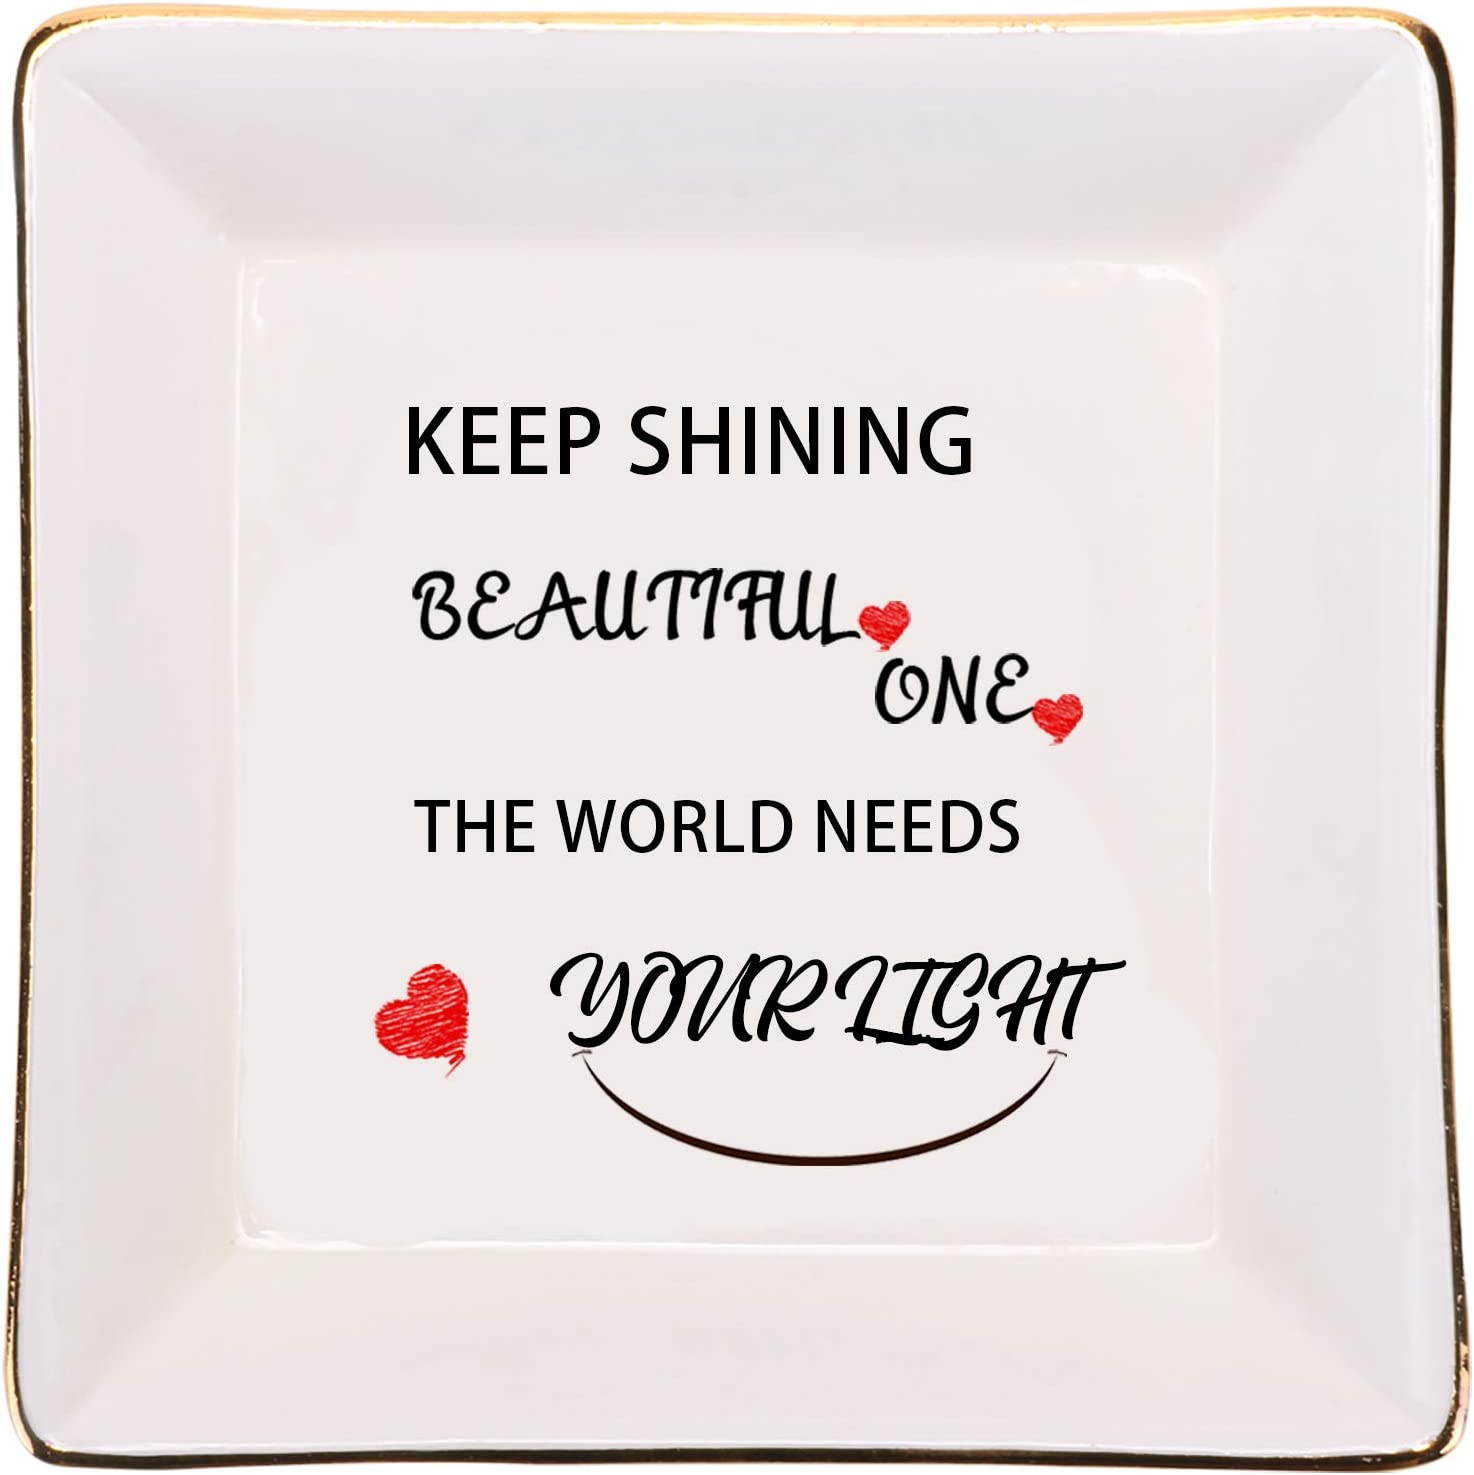 Axetos Inspirational Gifts for Her Women Friend, Jewelry Organizer Ring Plate - Keep Shining Beautiful One, The World Needs Your Light